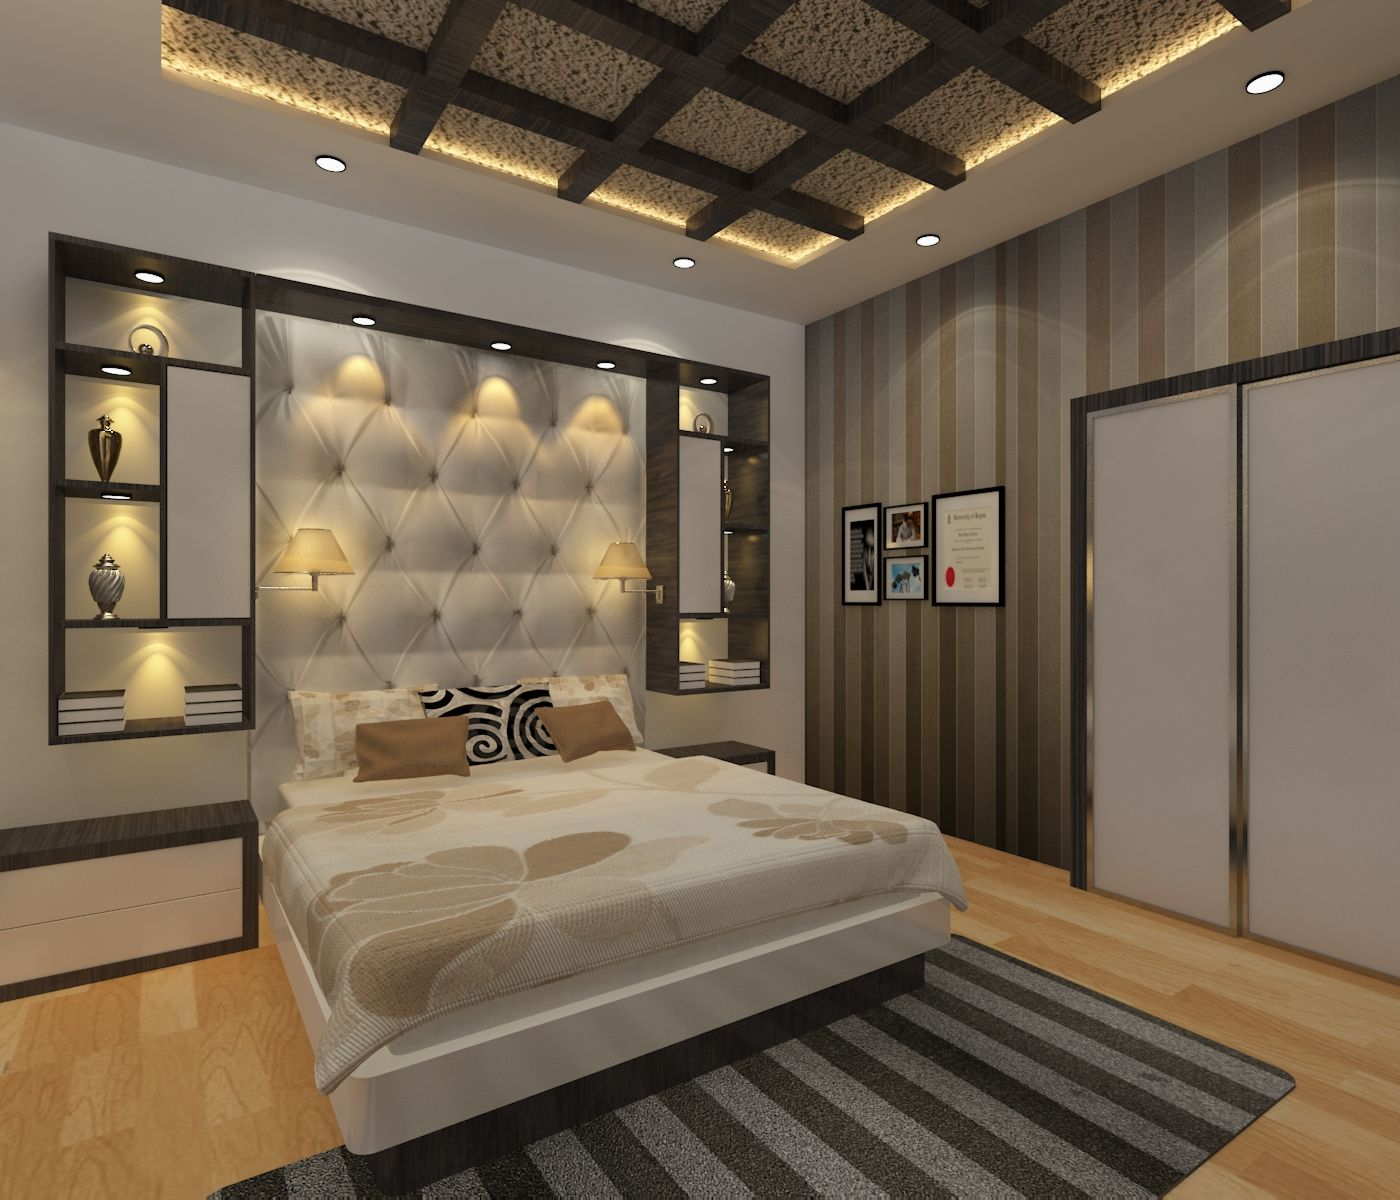 Luxury Bedroom With Elements Bedroom Bed Cover Ceiling